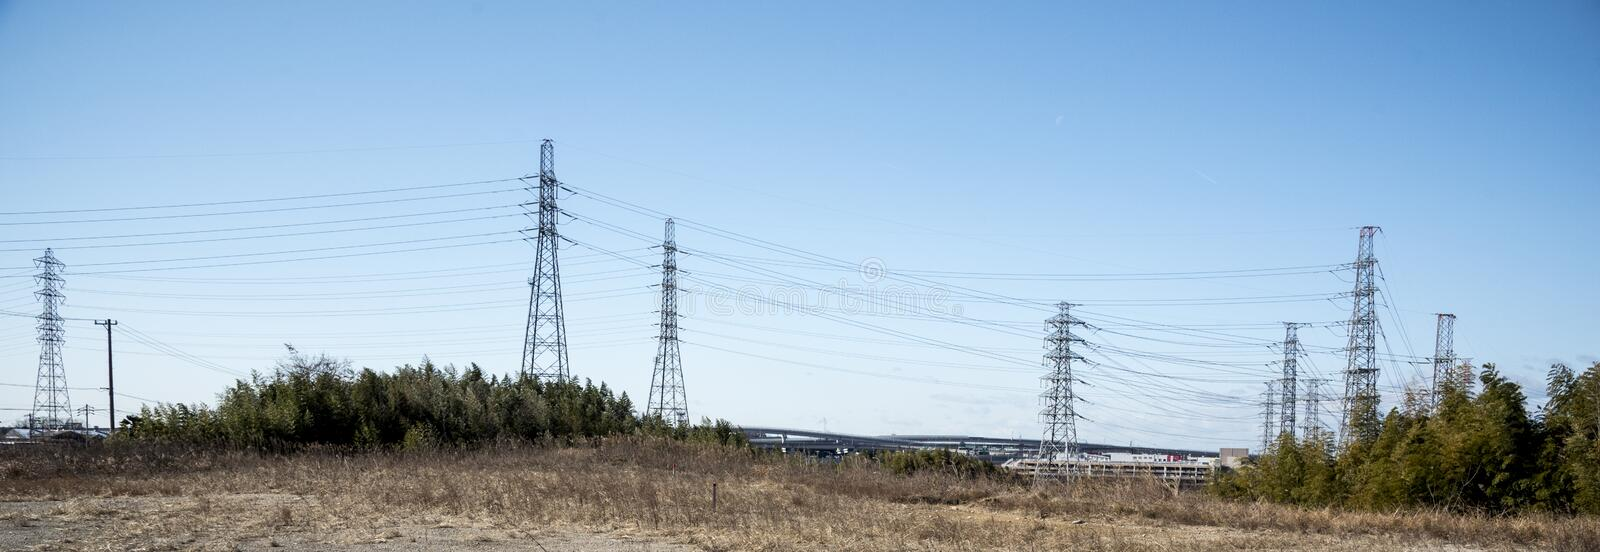 Power line in nature and sky, landscape, Technology concept stock photo